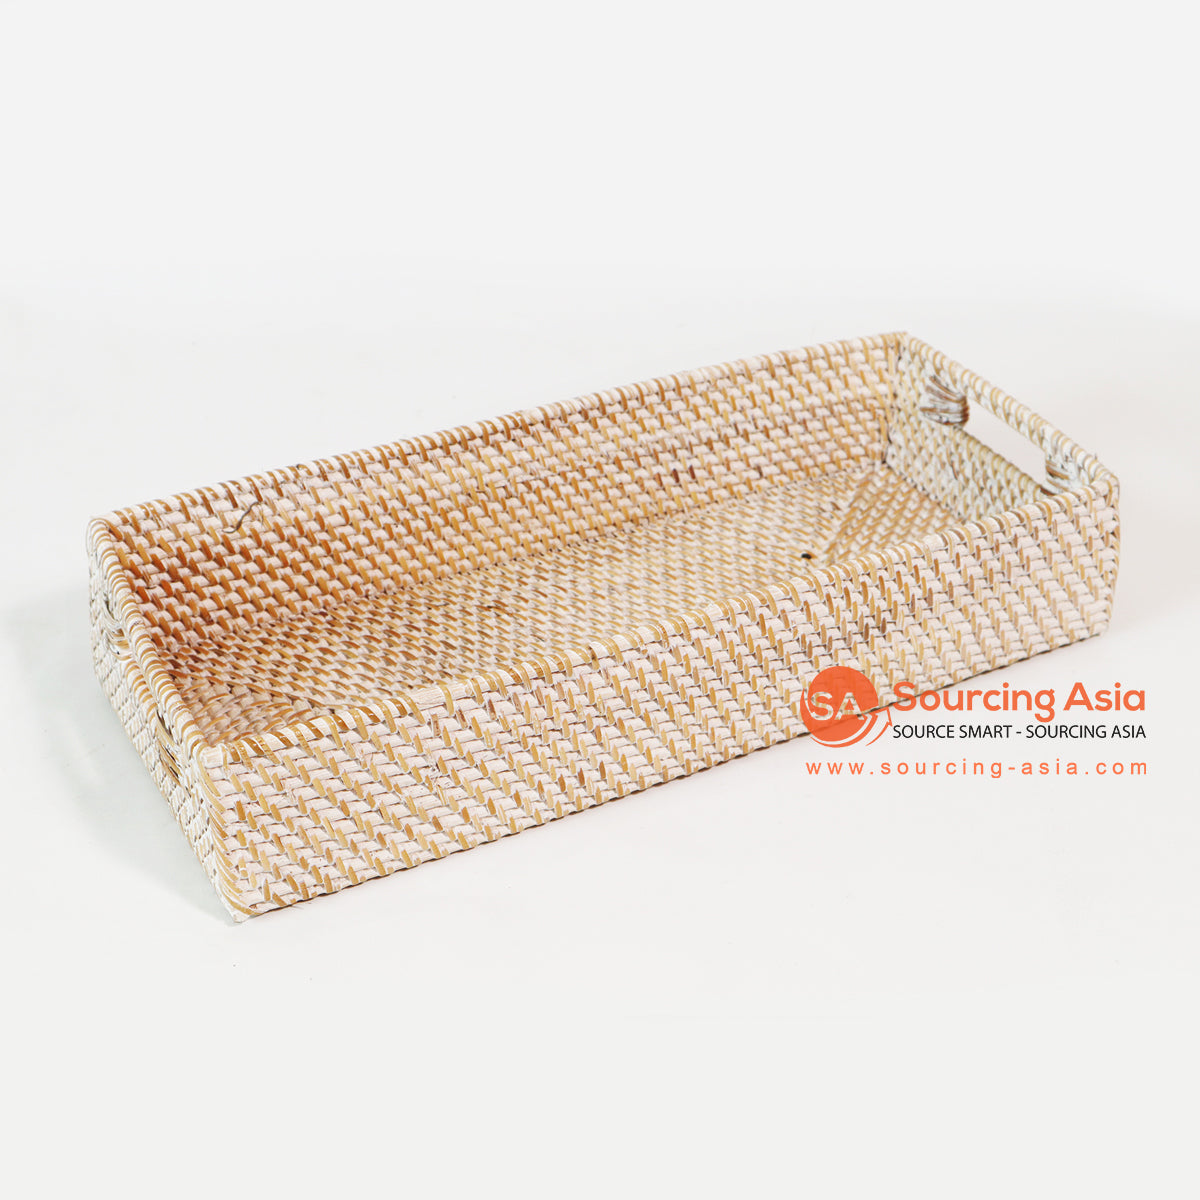 MTIC026 RATTAN TRAY WHITE WASH